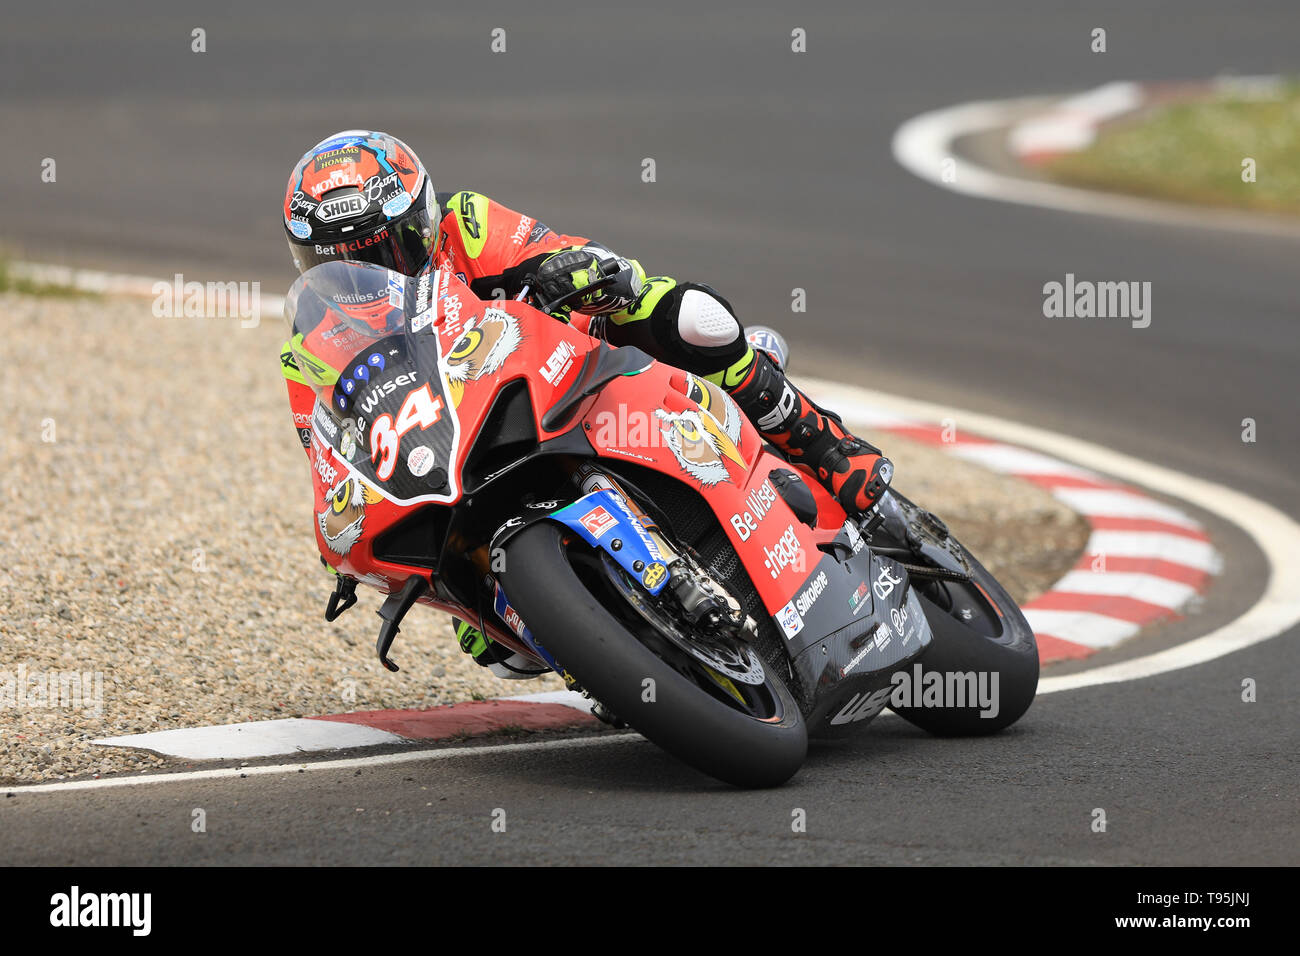 Portrush, Northern Ireland. 16th May, 2019. International North West 200 Motorcycle road racing, Thursday practice and evening racing; Alastair Seeley on the PBM Motorsport Ducati during the SuperBike qualifying session Credit: Action Plus Sports/Alamy Live News - Stock Image